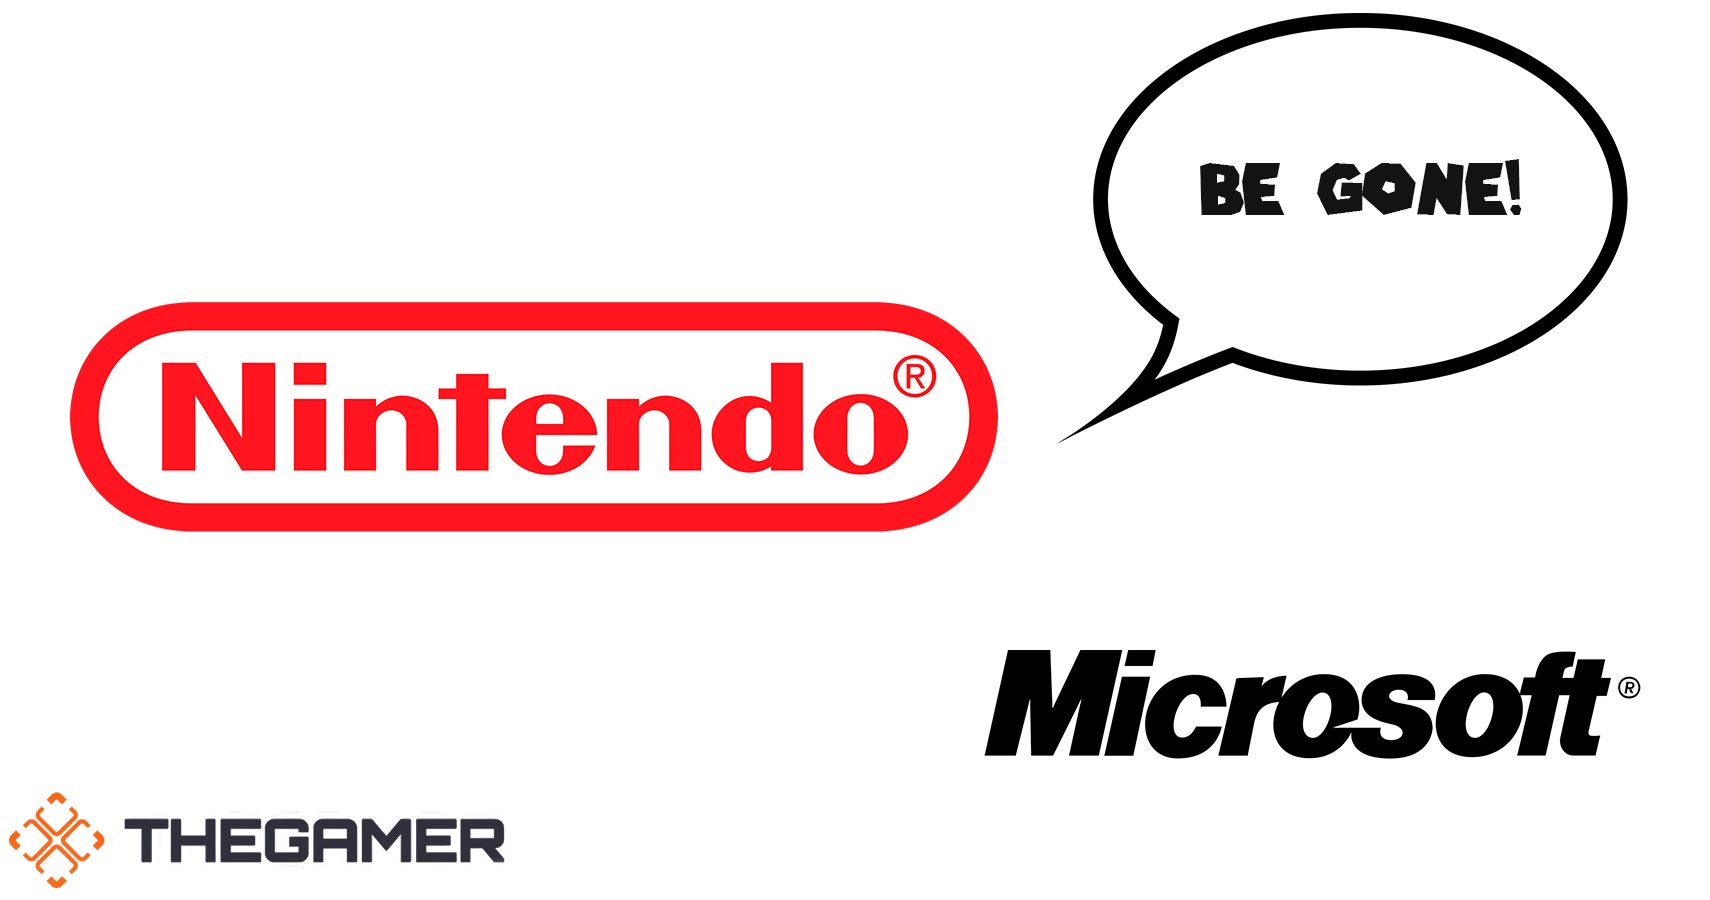 Former Microsoft Executive Recalls How Company Tried To Buyout Nintendo, Was Laughed Out Of Office